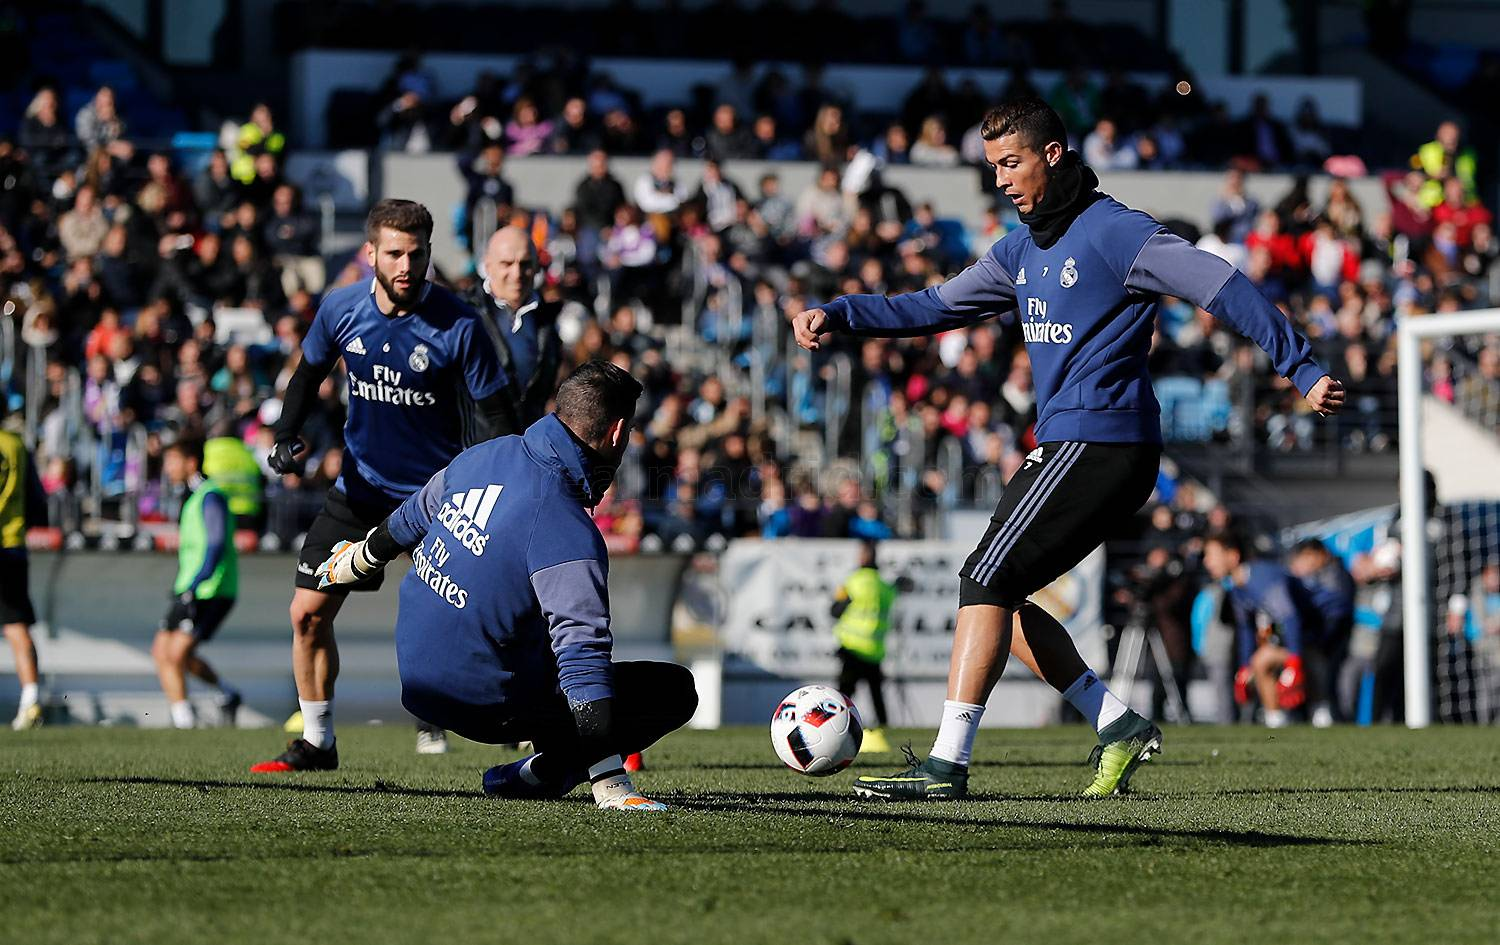 Real Madrid - Entrenamiento del Real Madrid - 30-12-2016